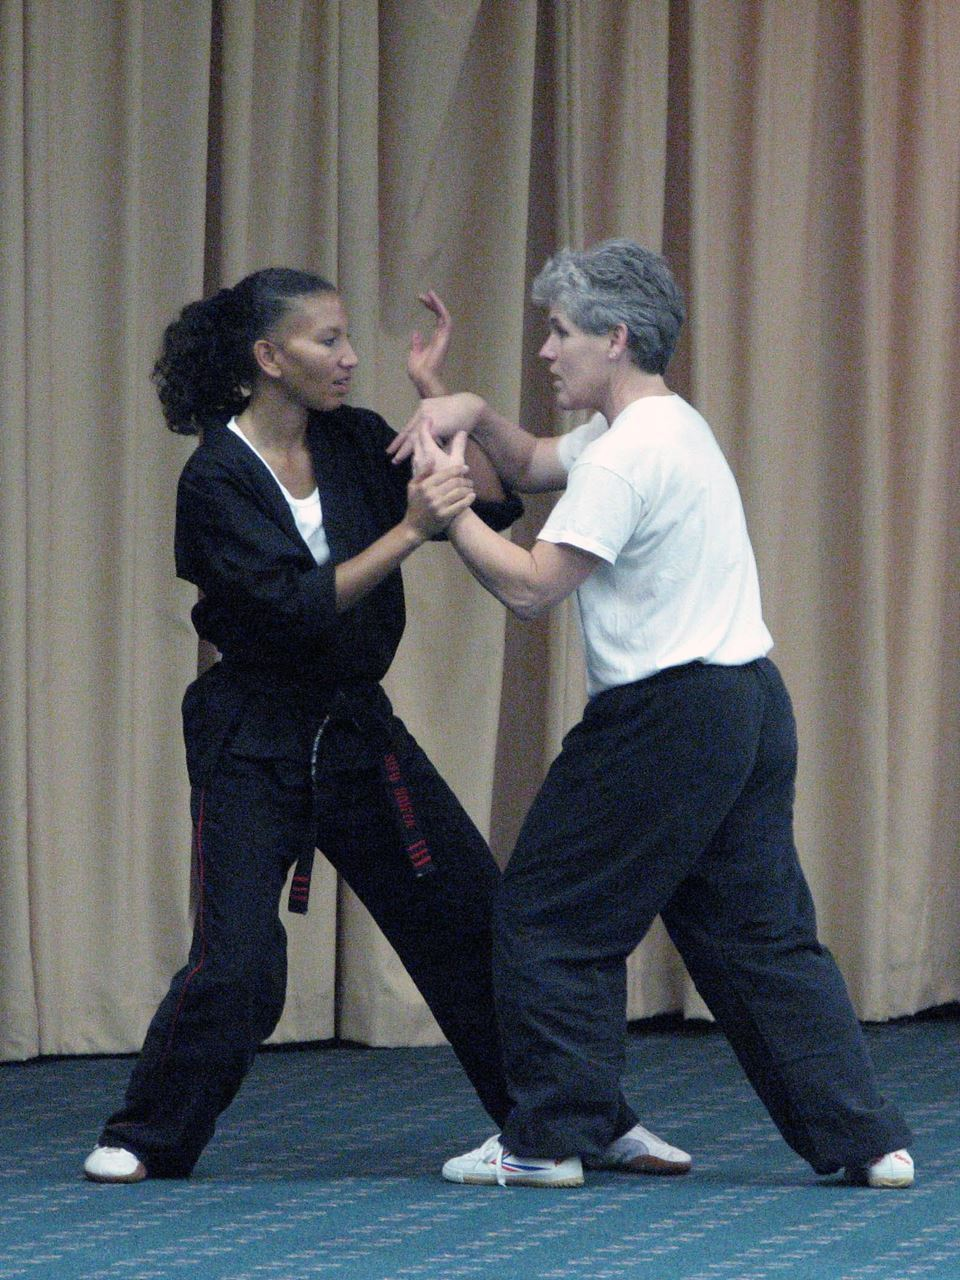 Sonia Richardson and Melinda Johnson, 2007